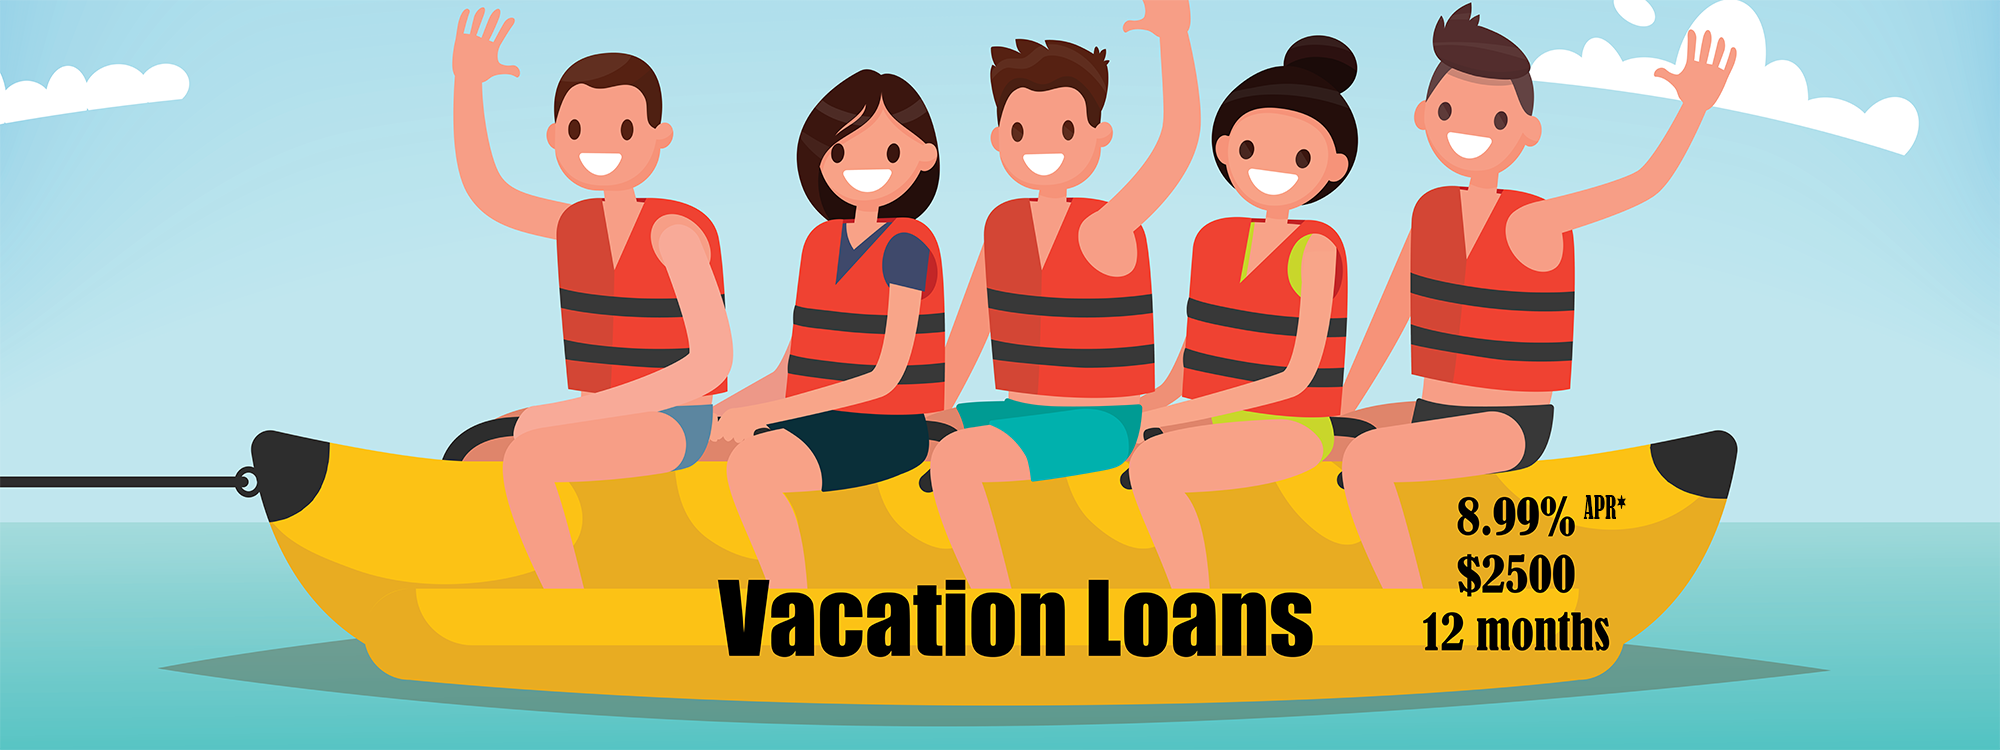 Vacation Loans. 8.99% APR* $2500 for 12 months.